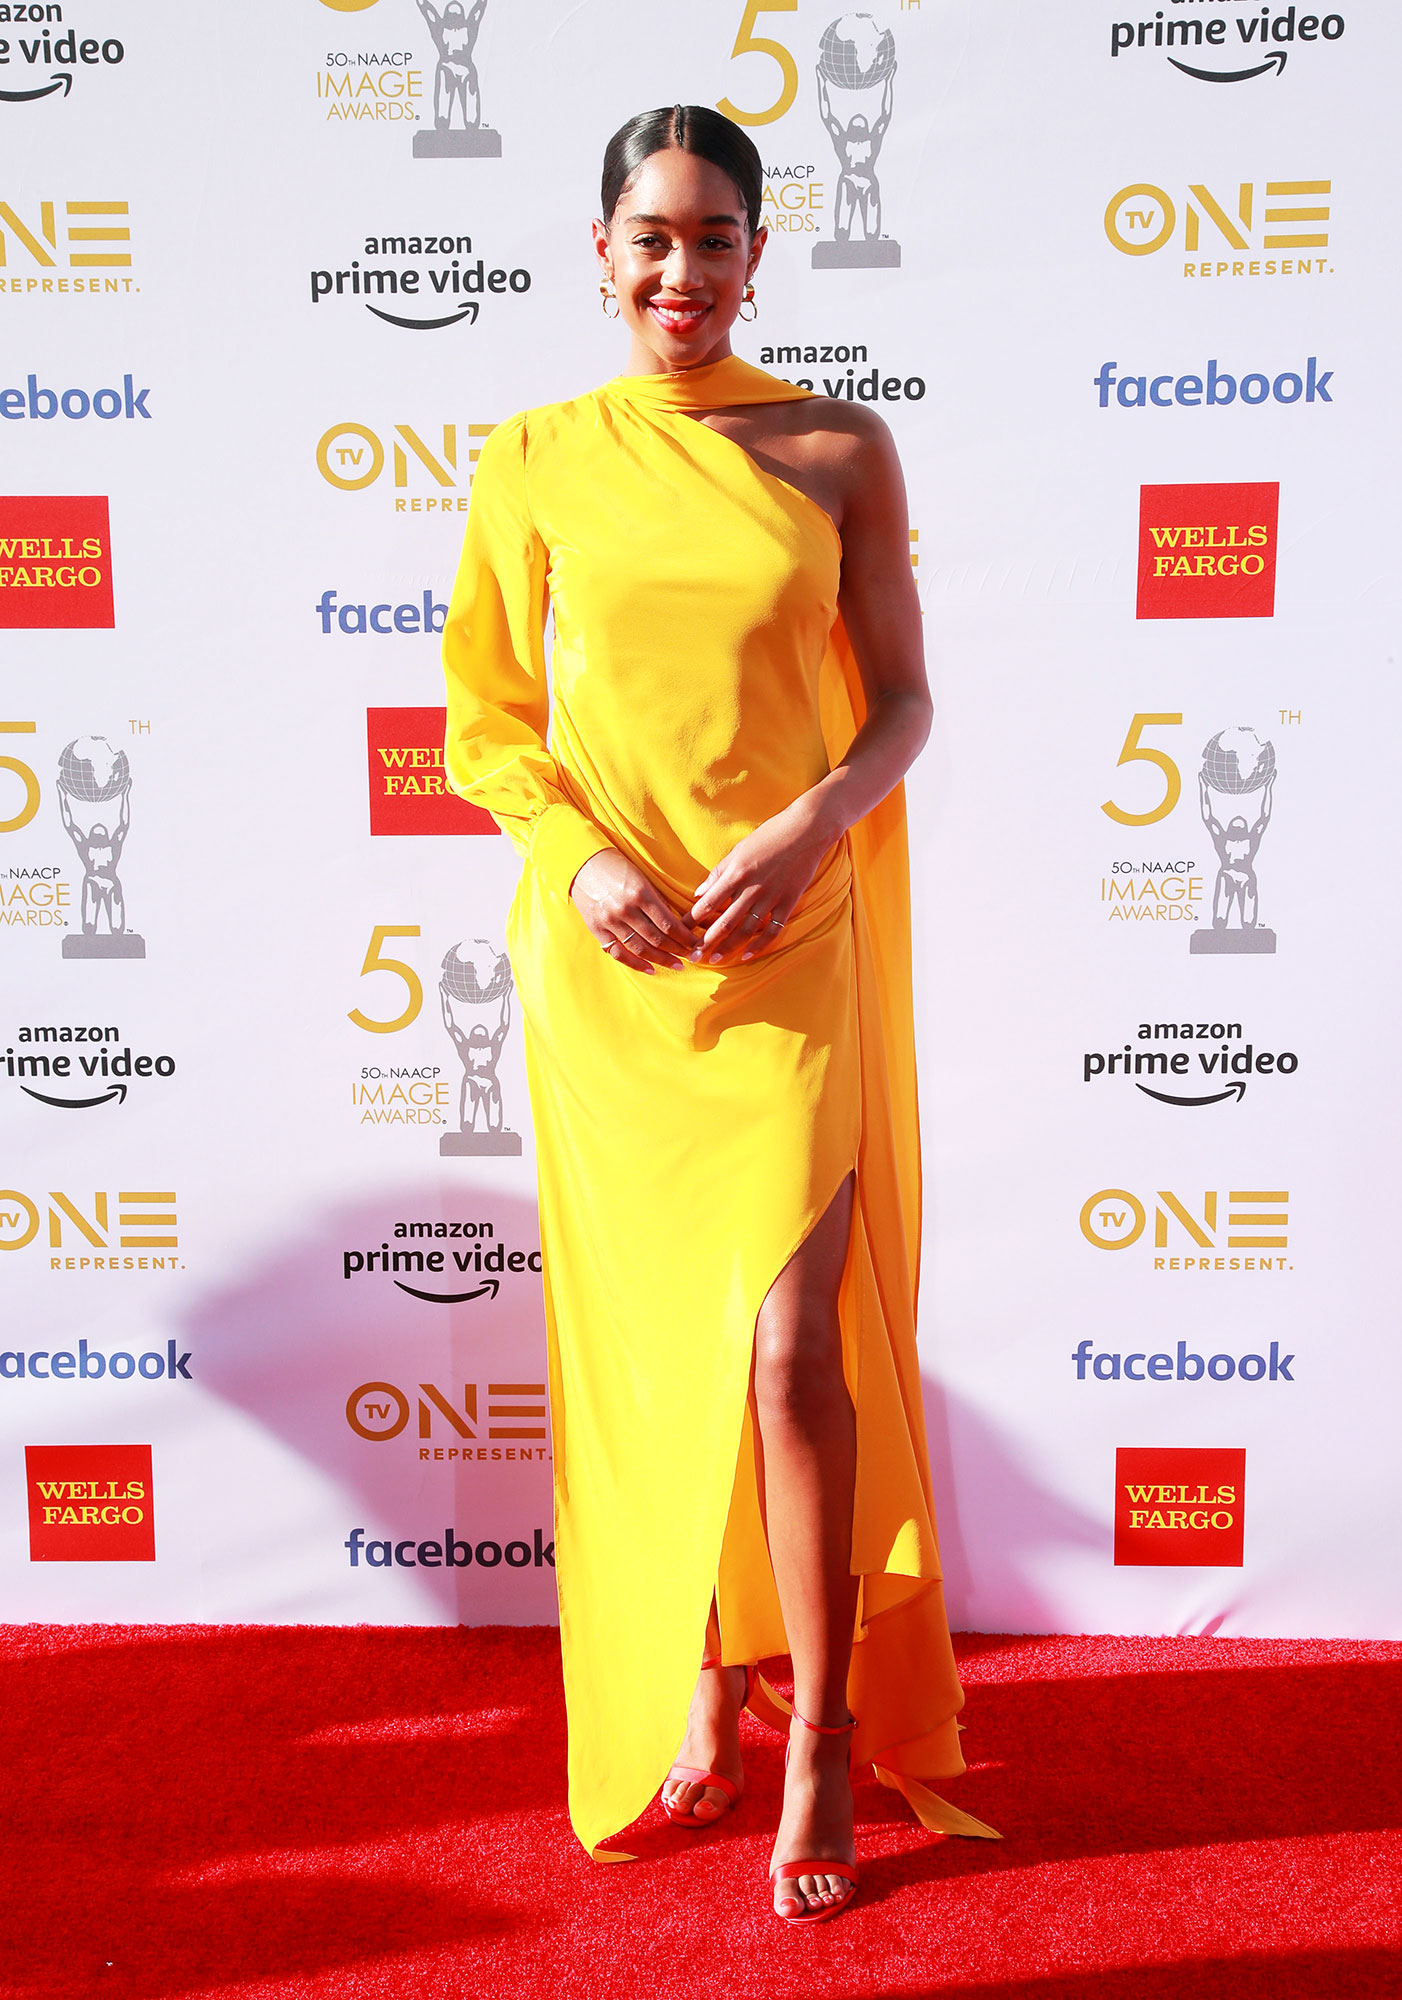 Laura Harrier See the Stars at the NAACP Image Awards - Wearing a one-shoulder yellow Pyer Moss frock with strappy sandals.